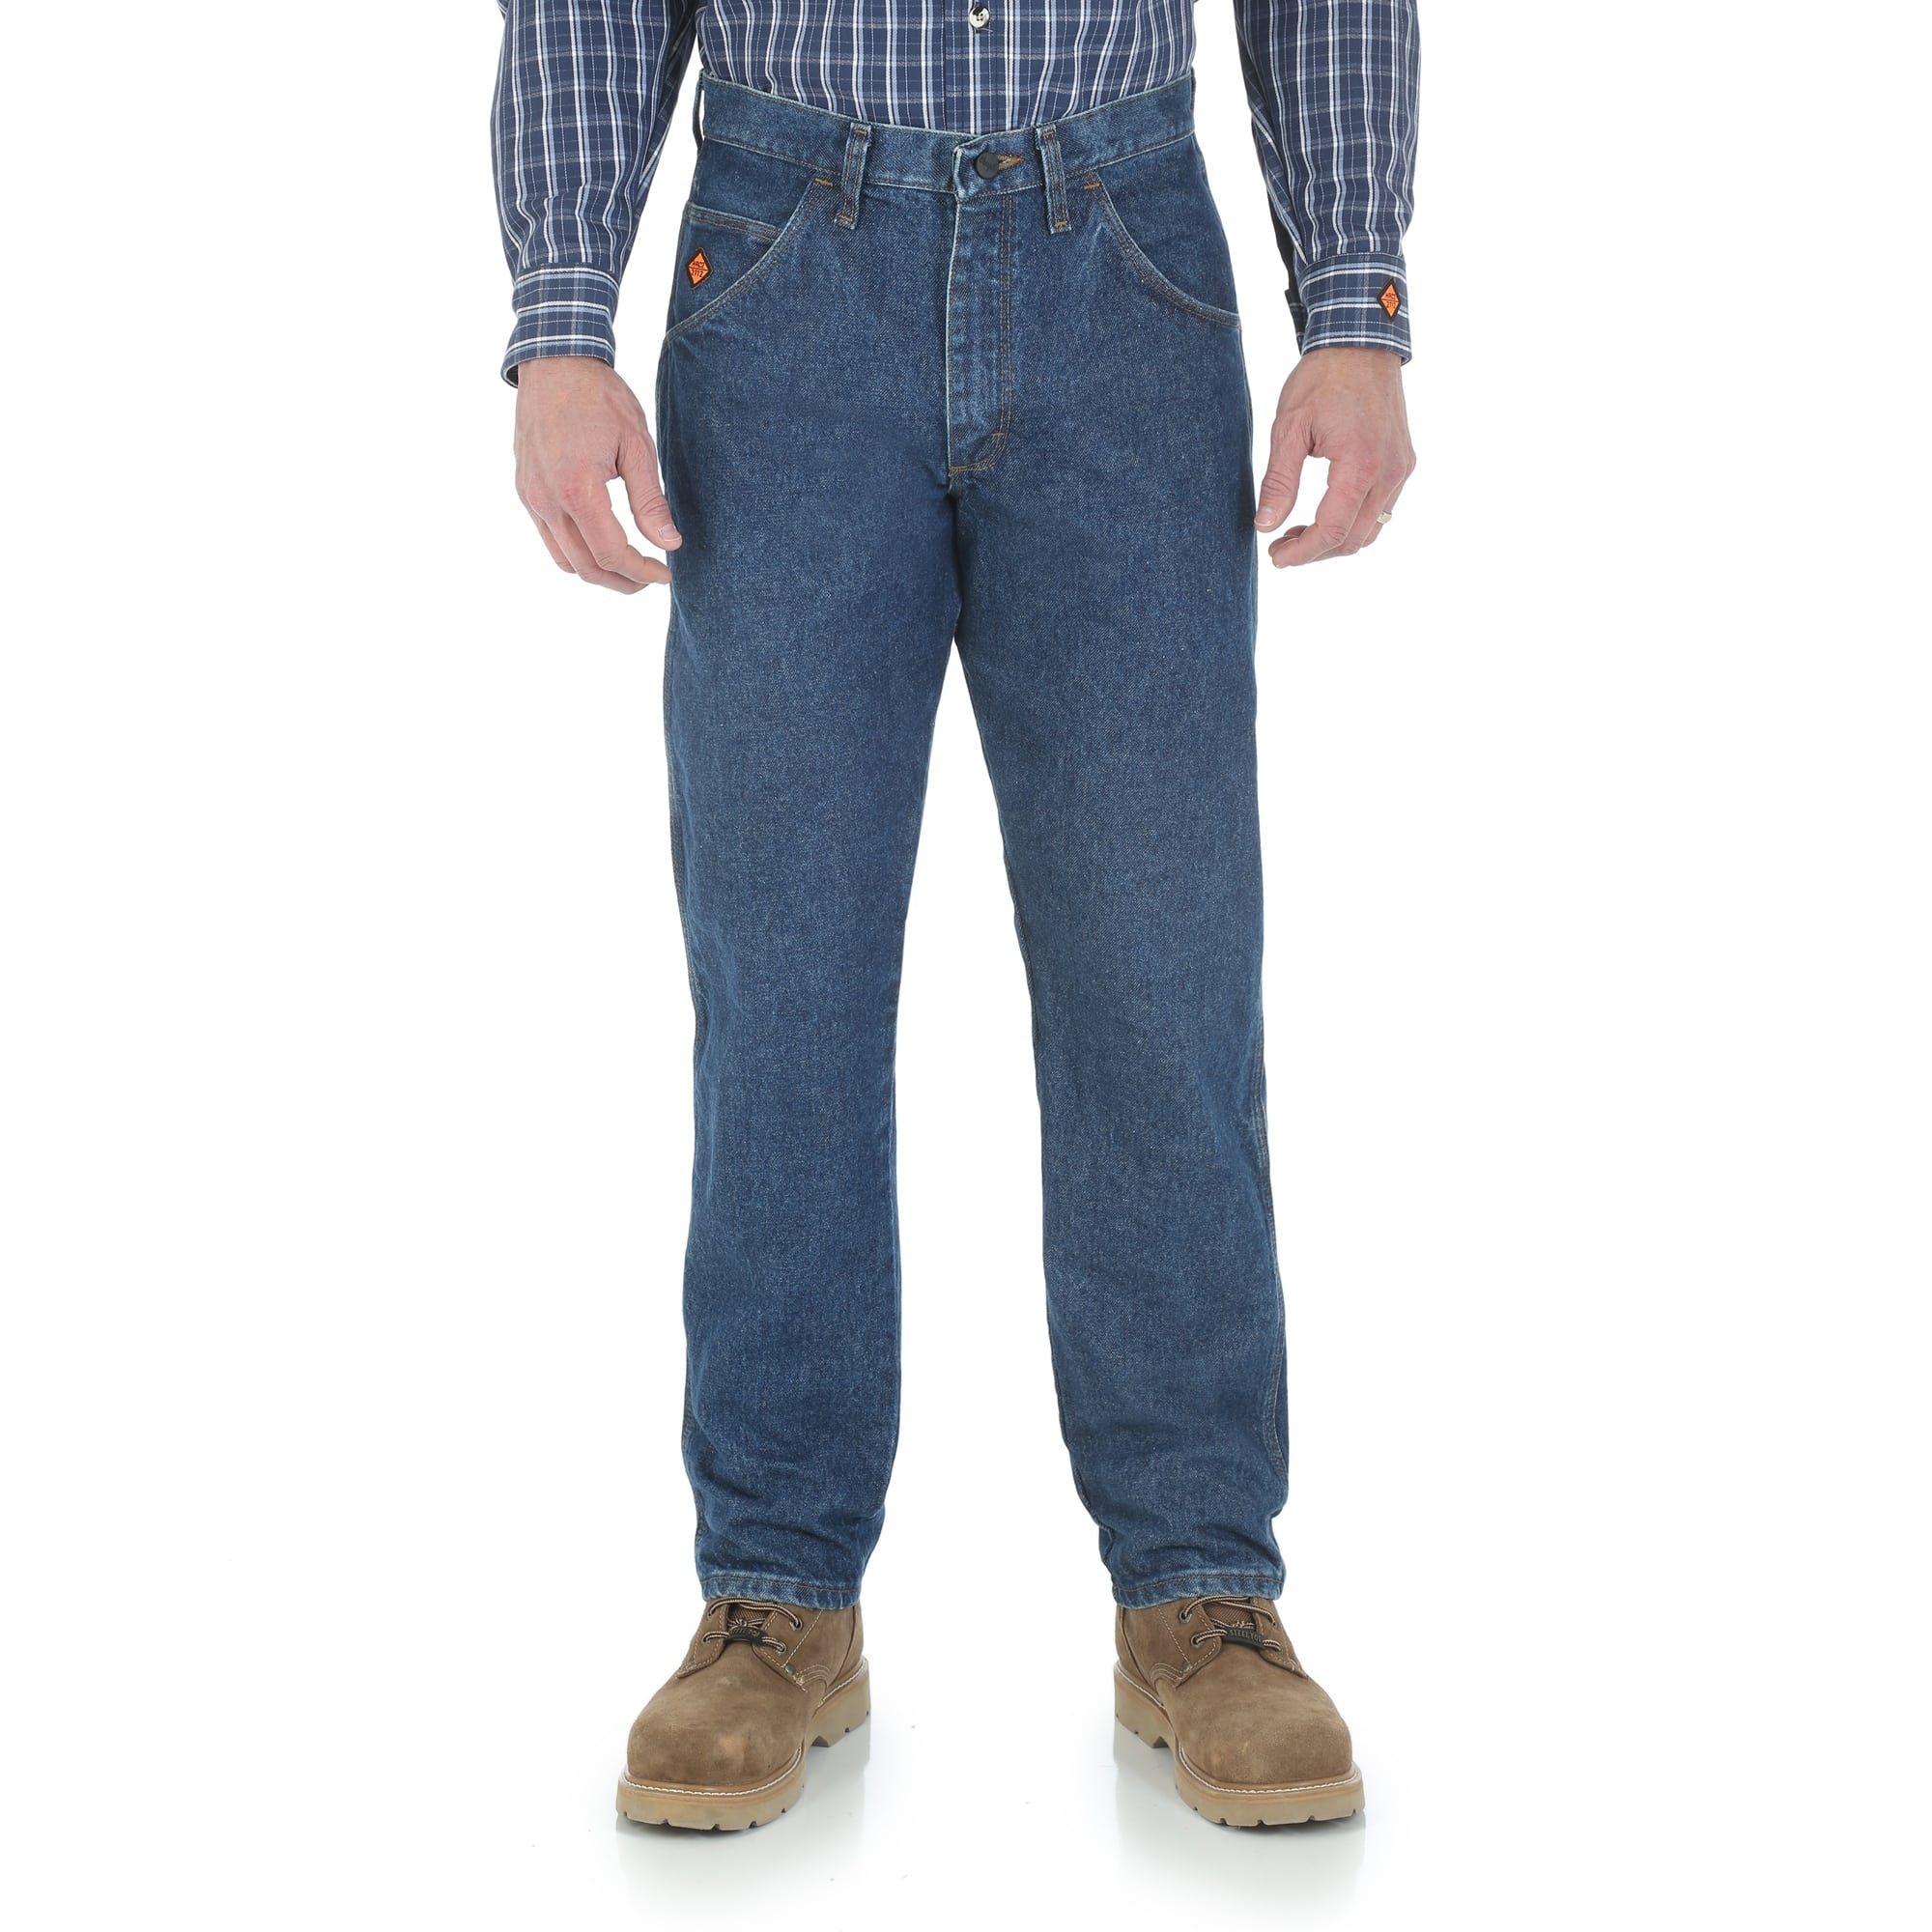 Arc Rated Relaxed Fit Wrangler Riggs Jeans